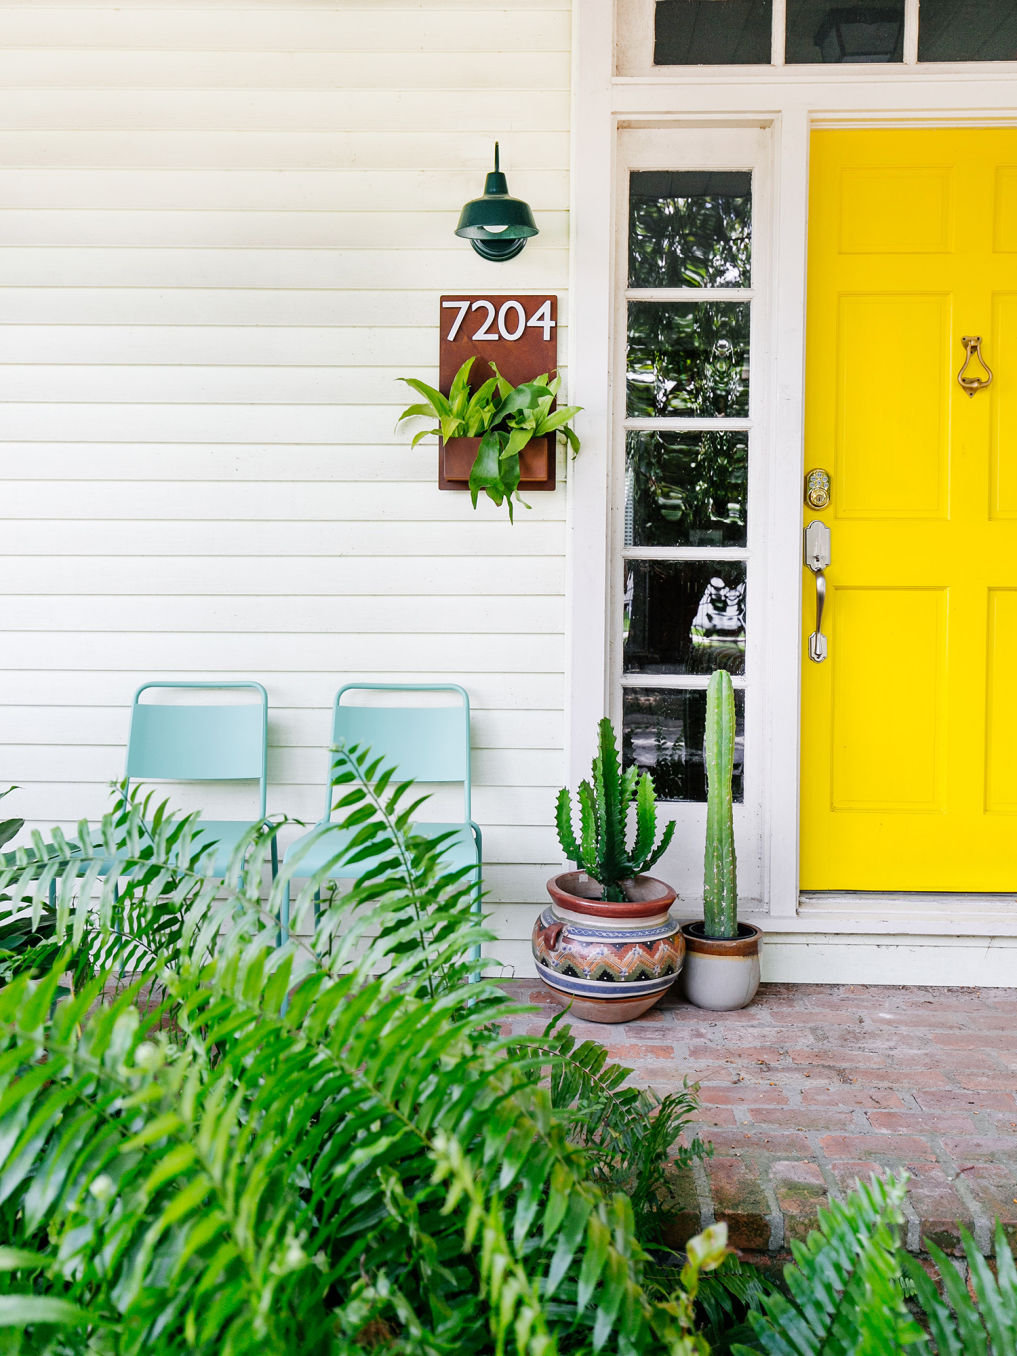 Tour this colorful home with a yellow front door #yellow #porch #homdecor #moderndecor #vintagemodern #frontdoor